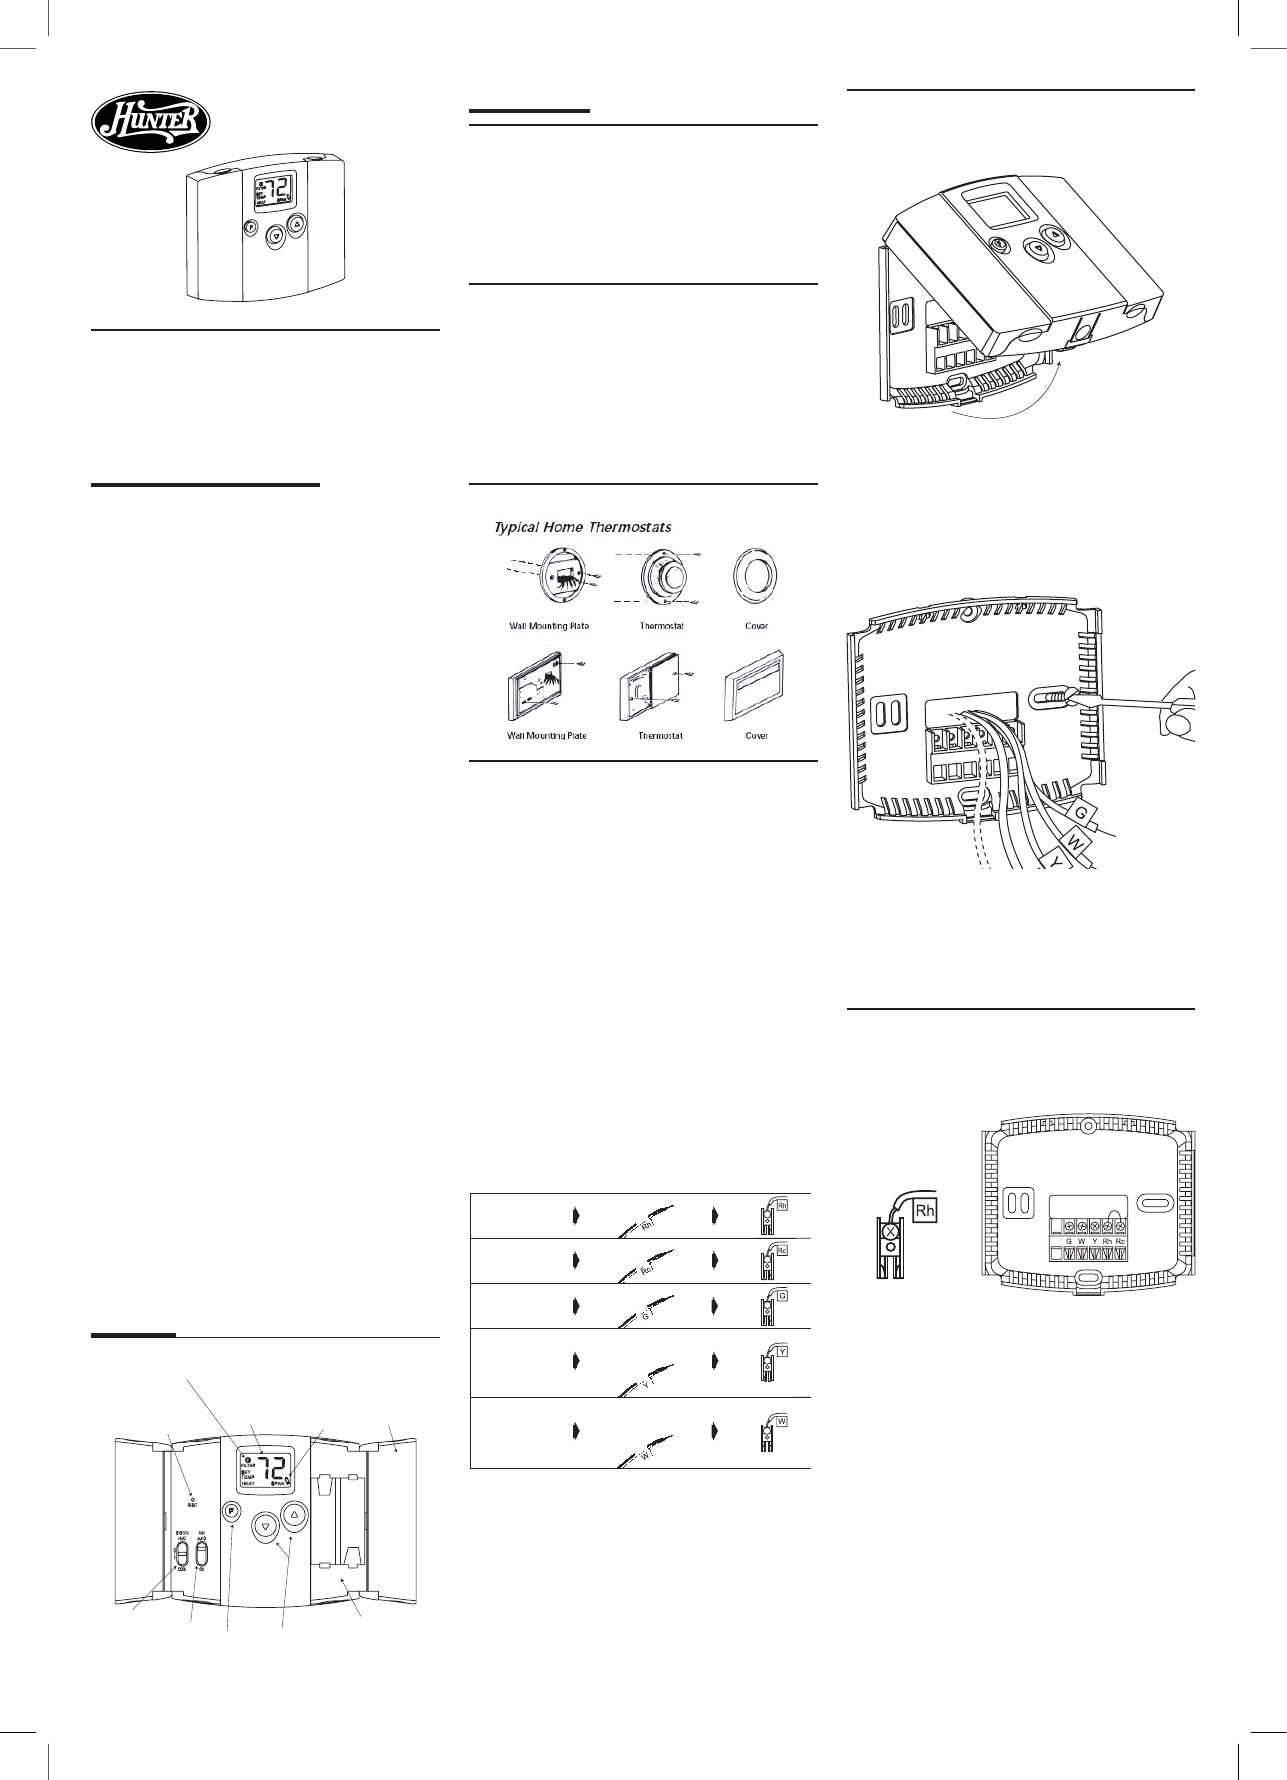 339547fd e85b 4e4c 8baf d5cf2d0e6ada bg1 hunter fan wire colors,fan free download printable wiring diagrams,Badland Winches Wiring Html